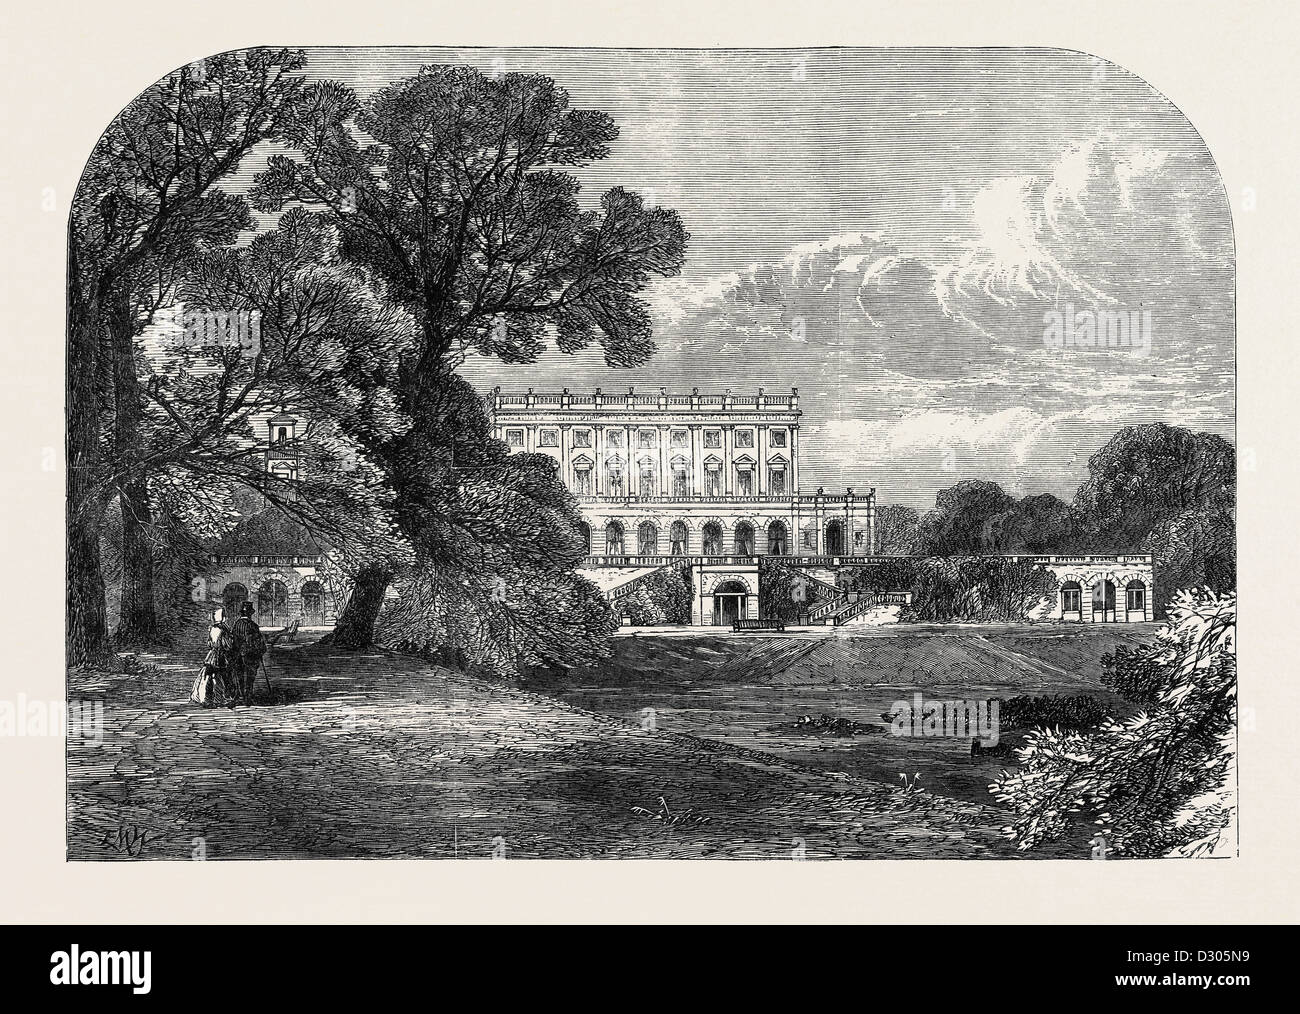 CLIEFDEN THE RESIDENCE OF THE DOWAGER DUCHESS OF SUTHERLAND VISITED BY THE QUEEN 1866 - Stock Image